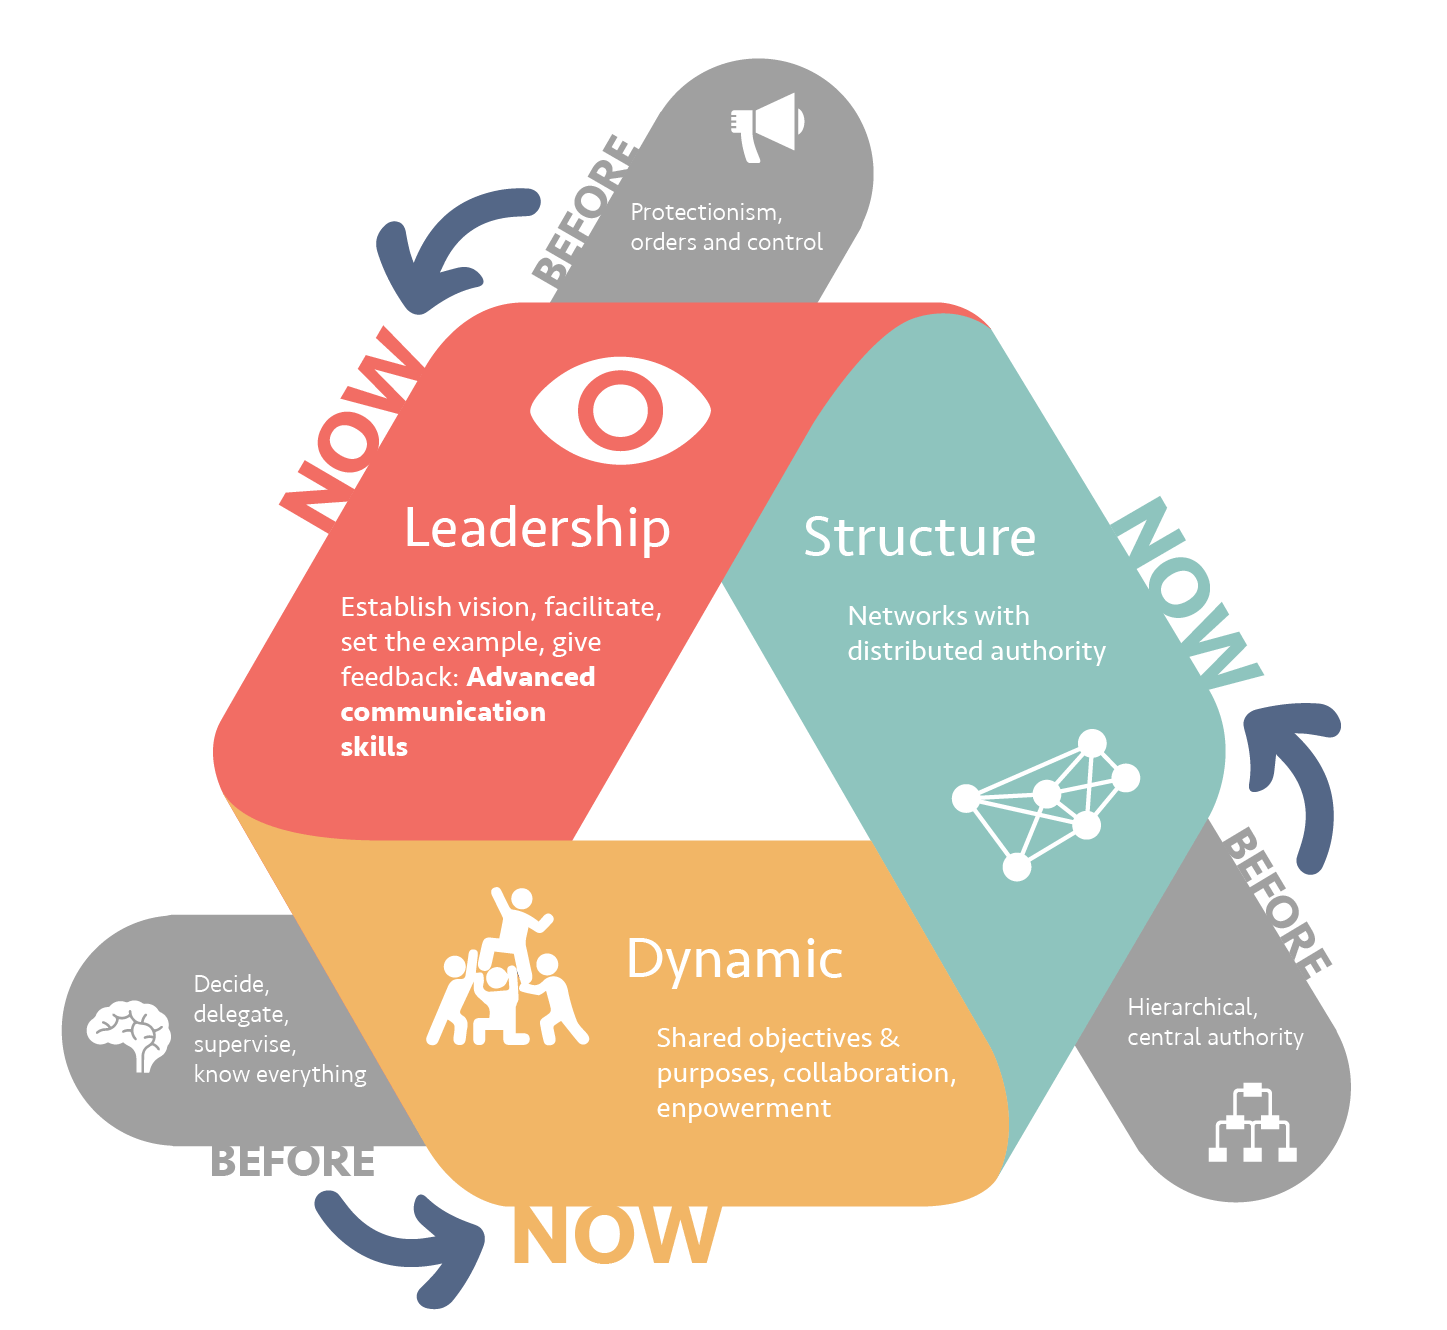 A new vision of leadership